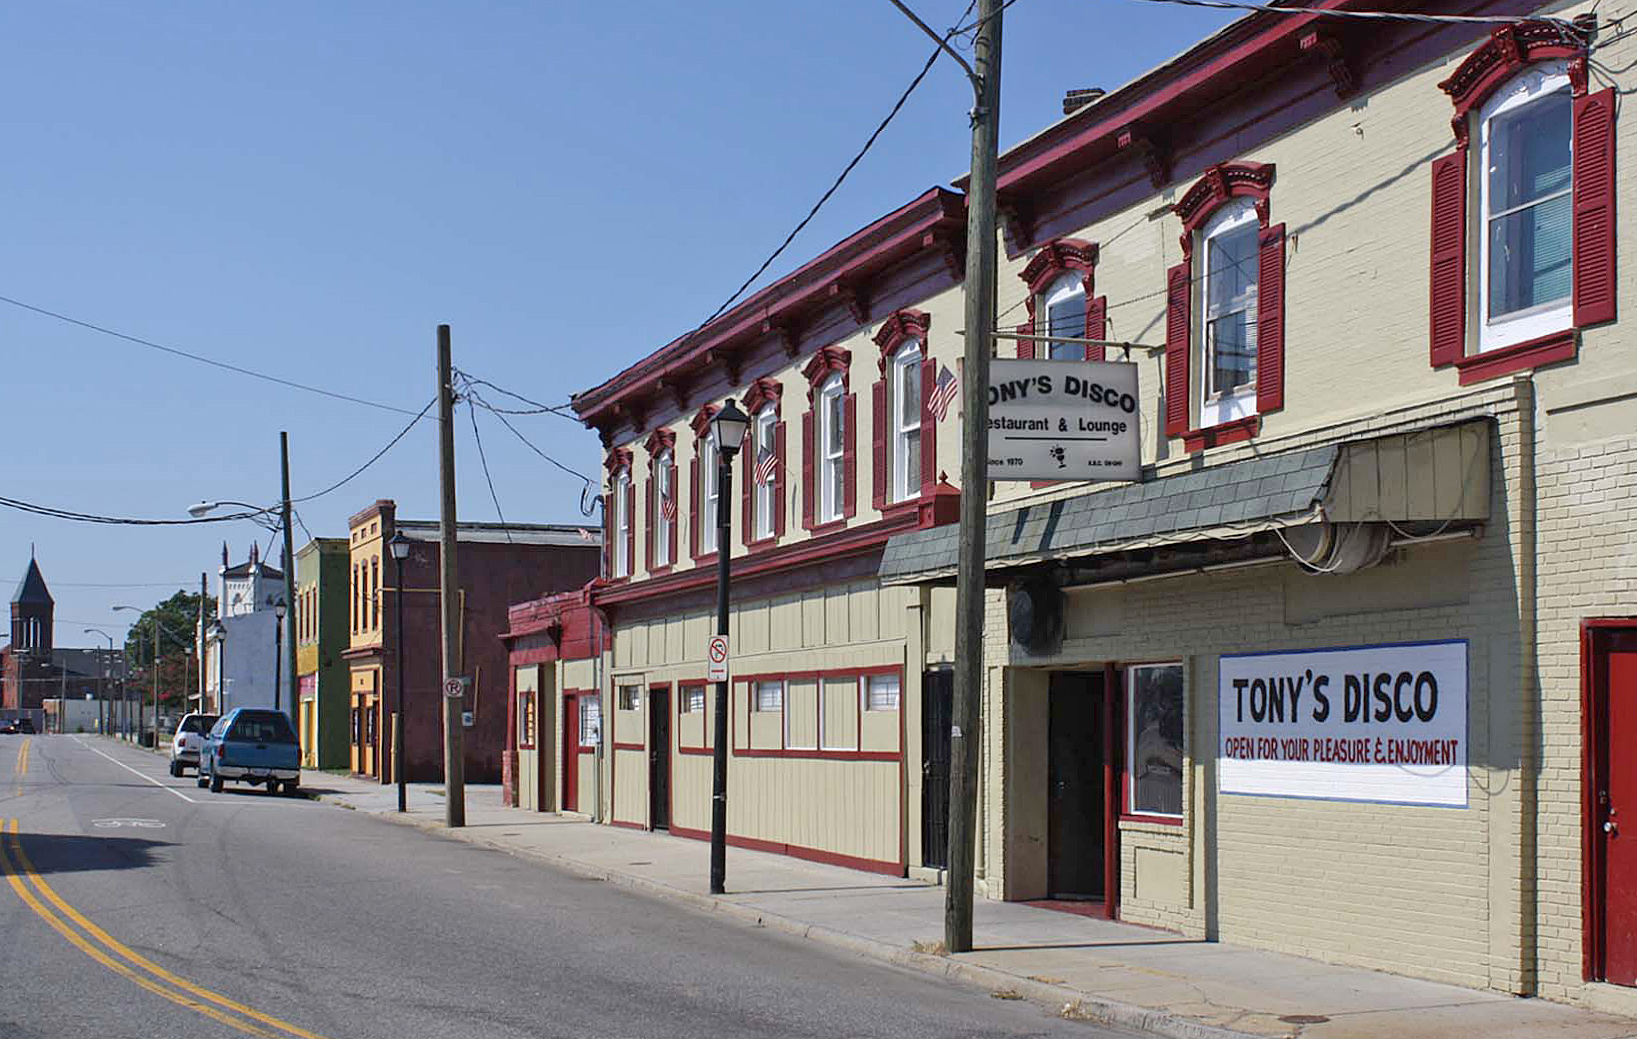 Halifax Triangle & Downtown Commercial Historic District